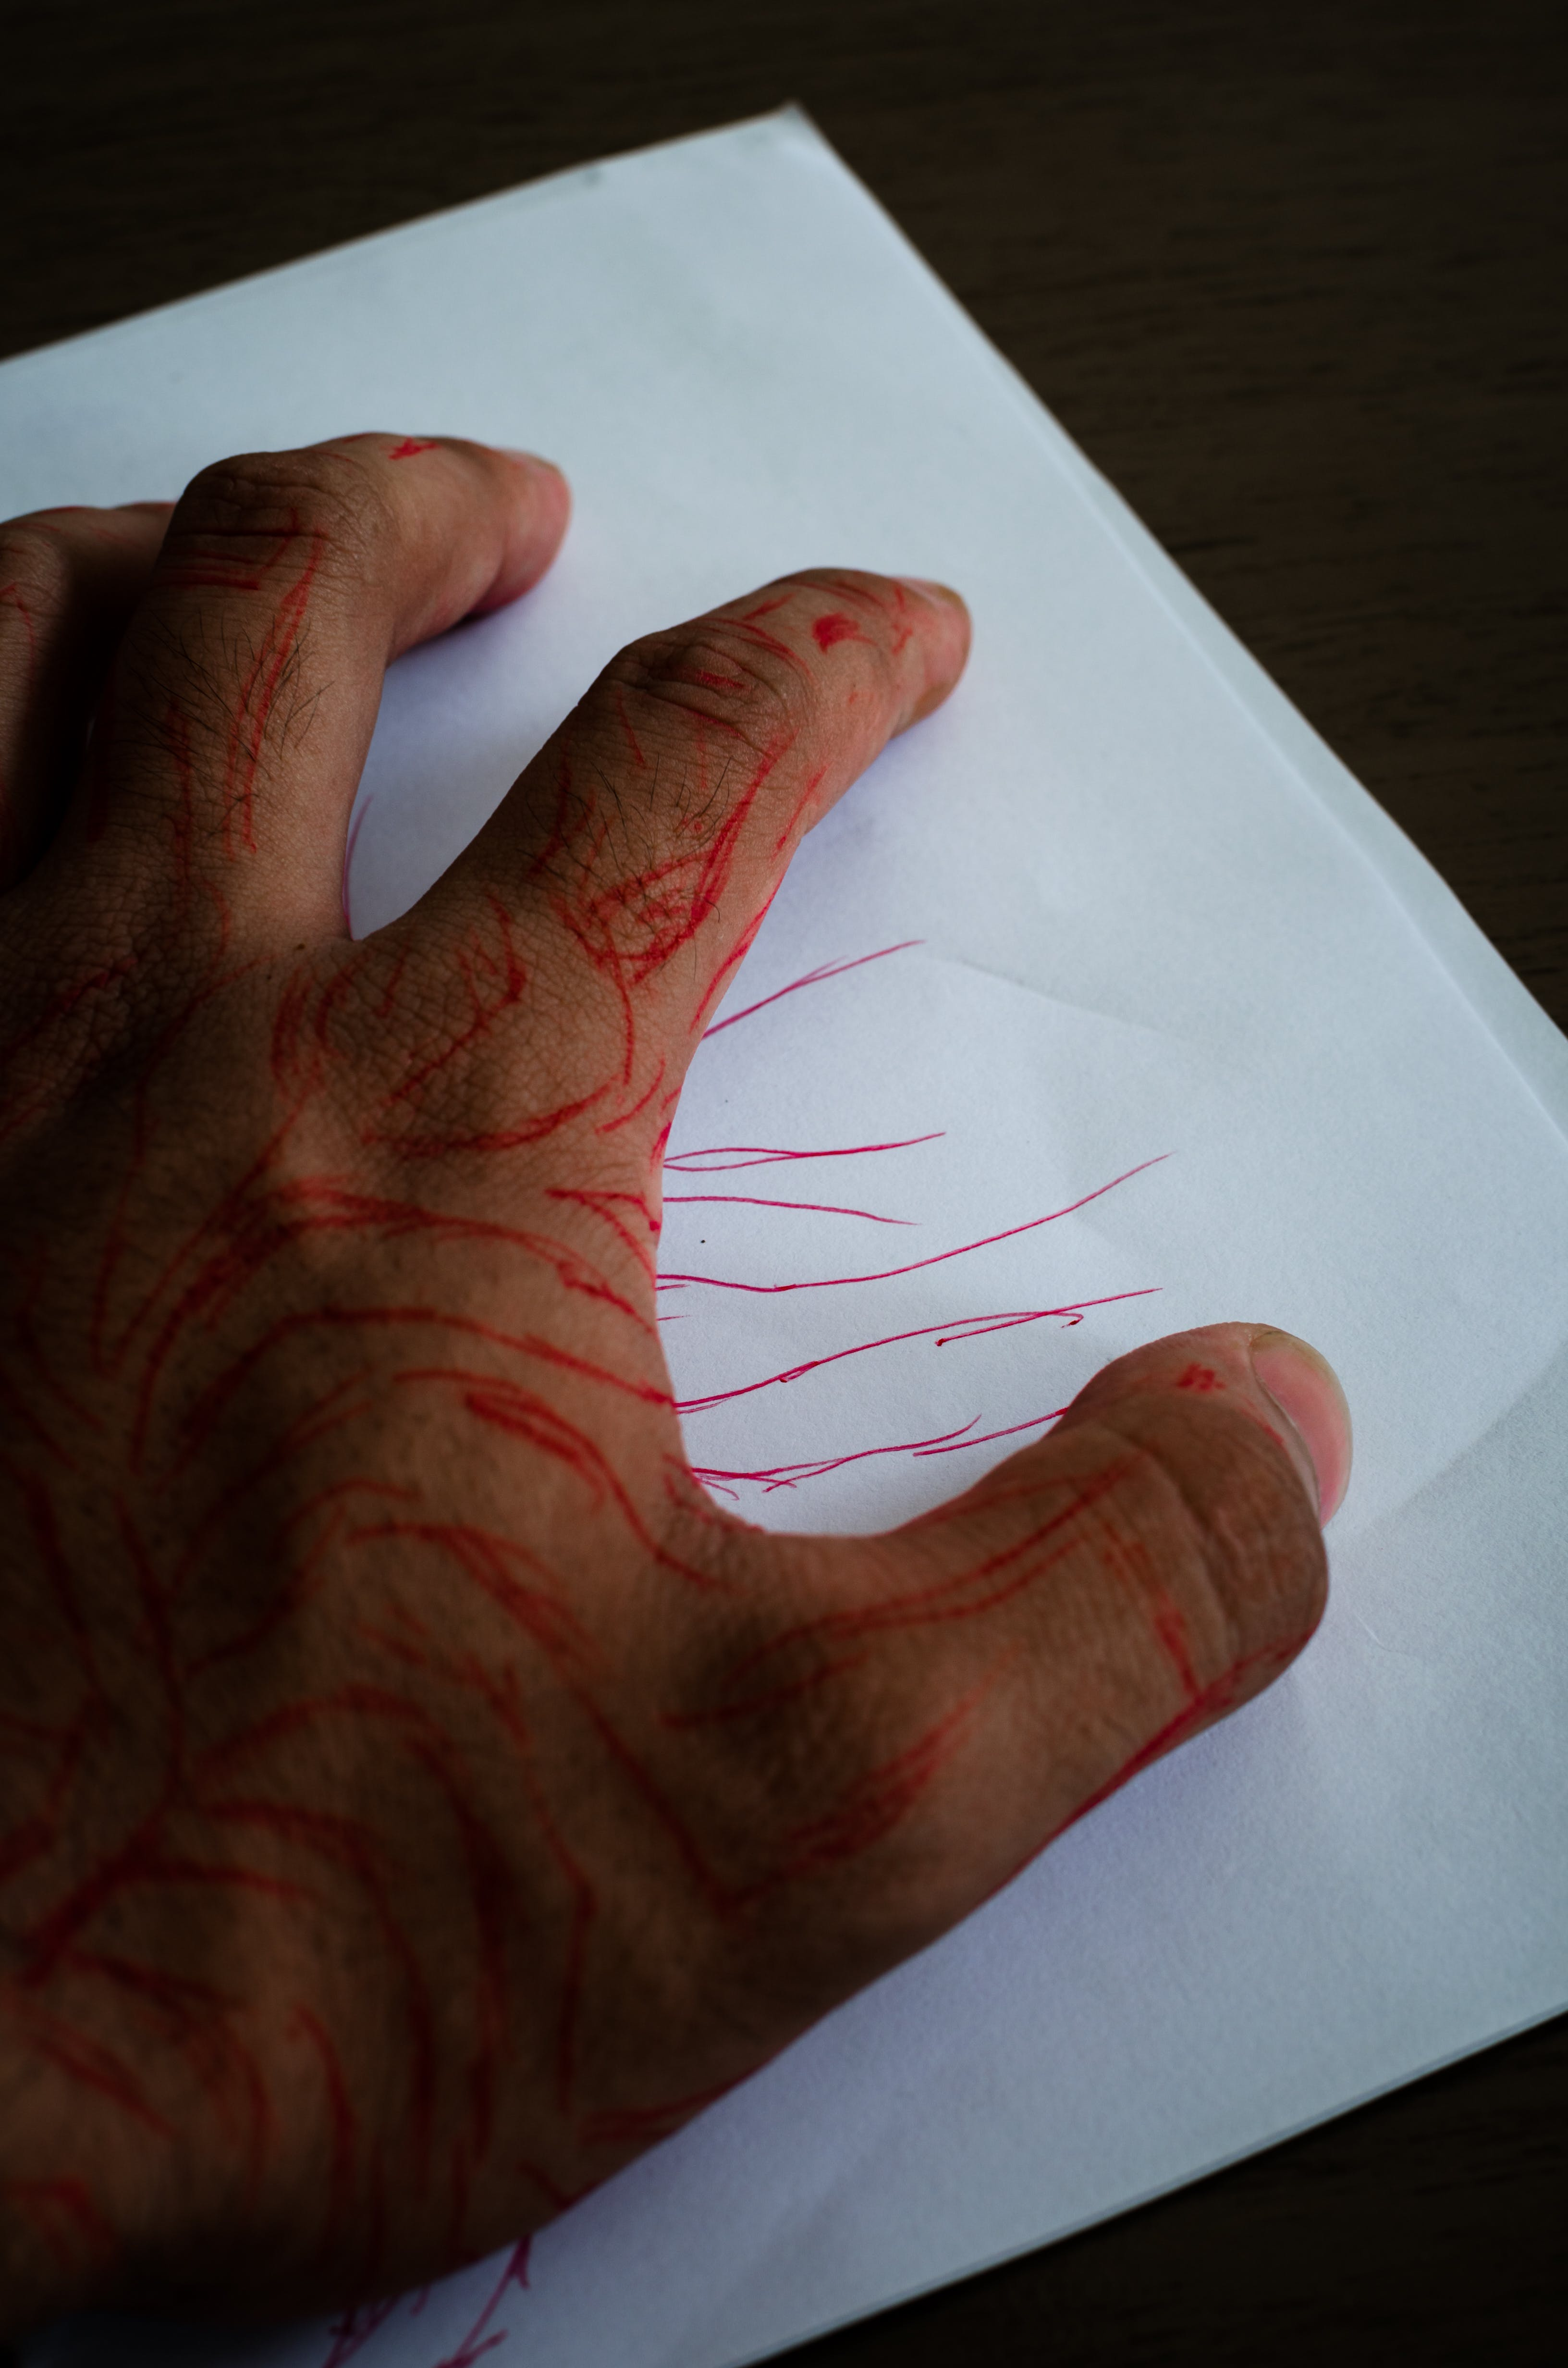 Free stock photo of red, hand, drawing, ink